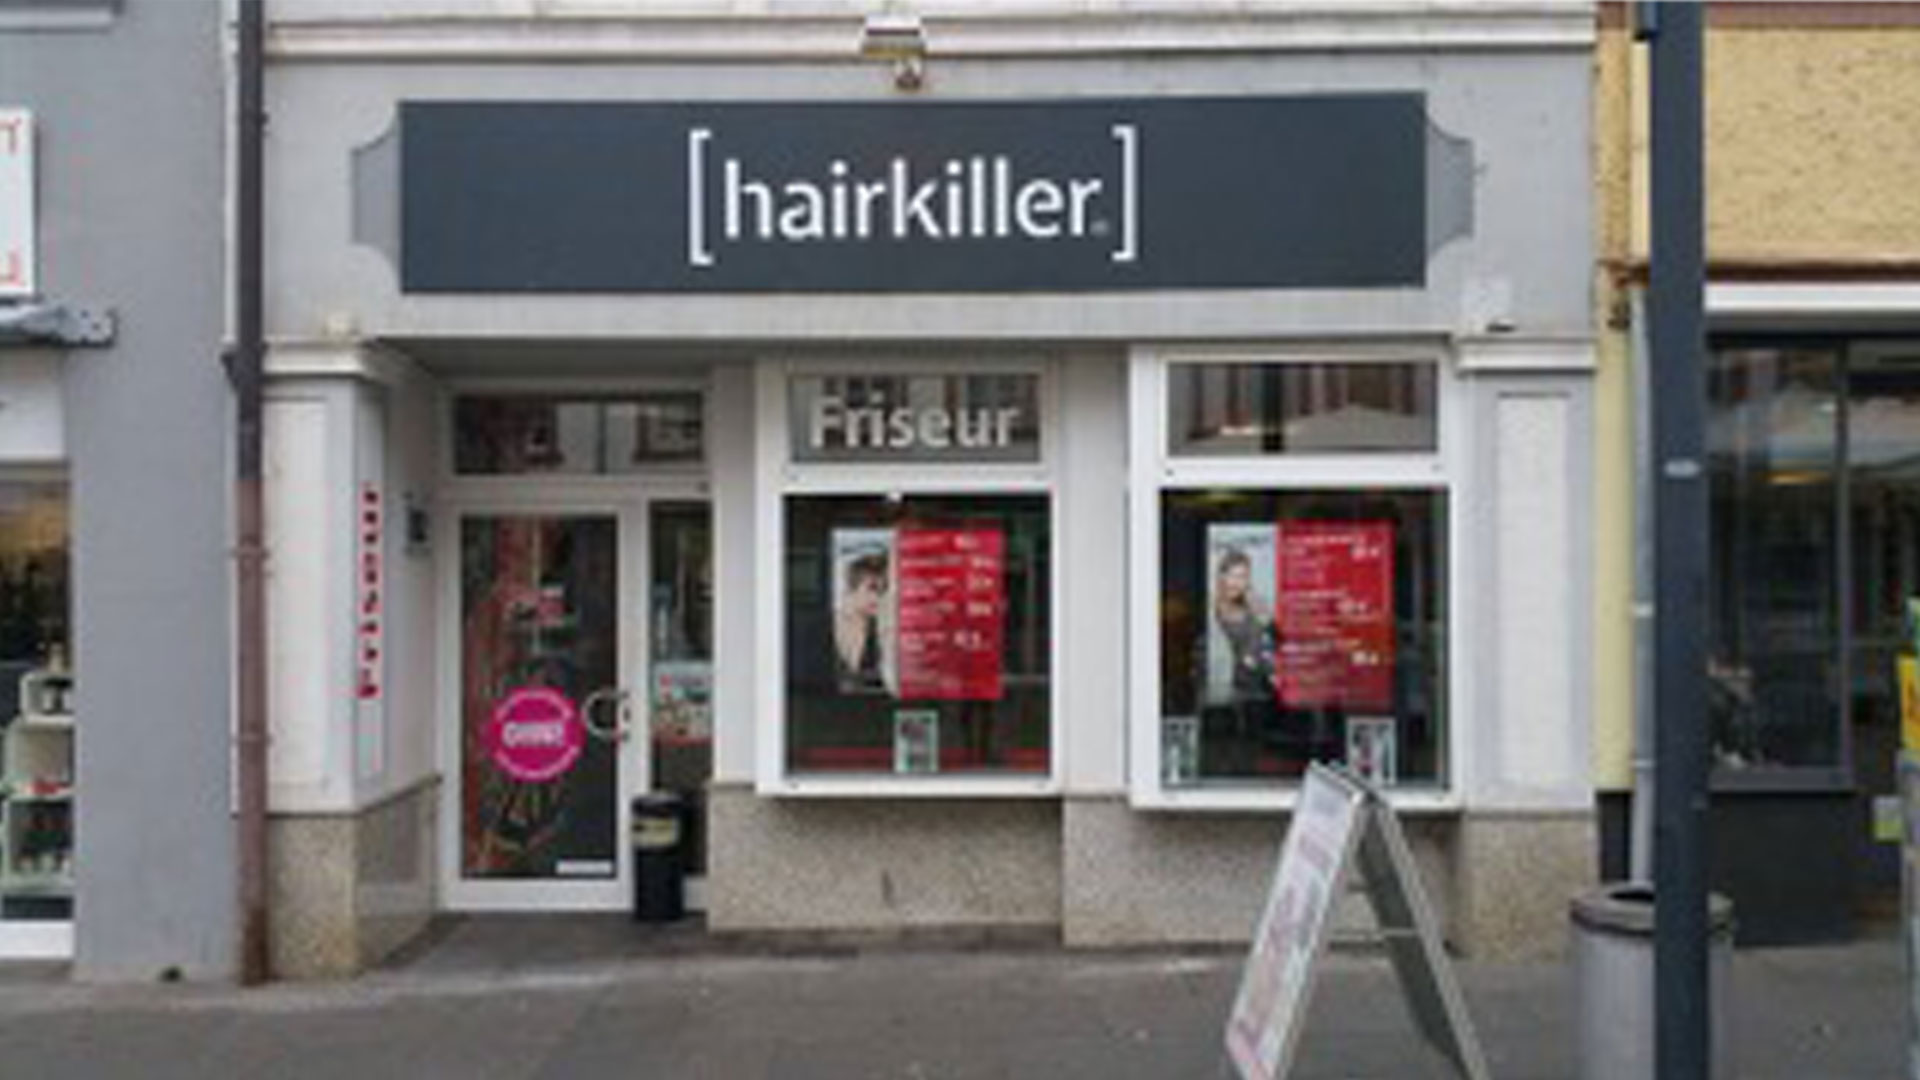 Hairkiller-Salon